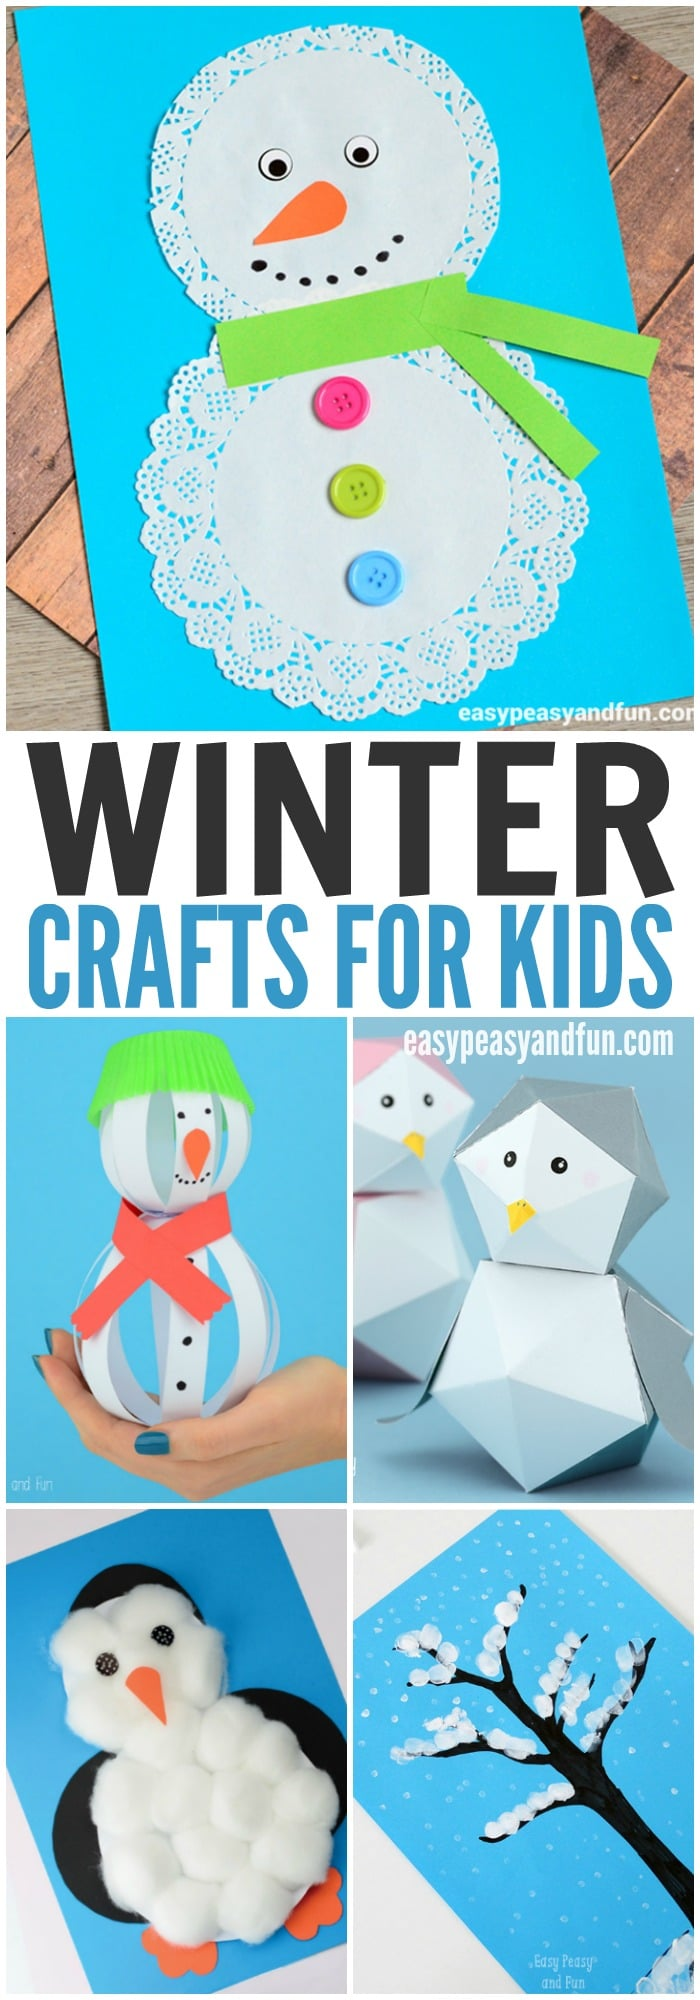 You can do all these at home and some of these winter crafts for kids are perfect to make in the classroom too. When thinking about winter crafts, snowmen, penguins, snowflakes and arctic animals always come to mind and we've got most of it covered (and keep on adding new fun ideas and tutorials for kids to make).